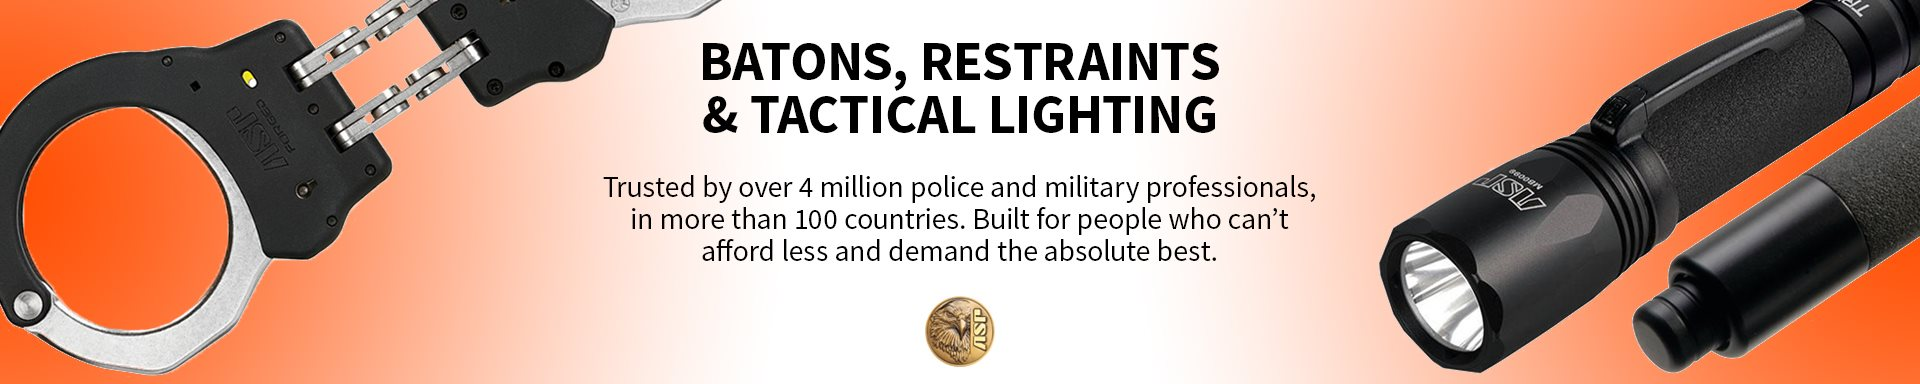 ASP - Batons, Restraints and Tactical Lighting